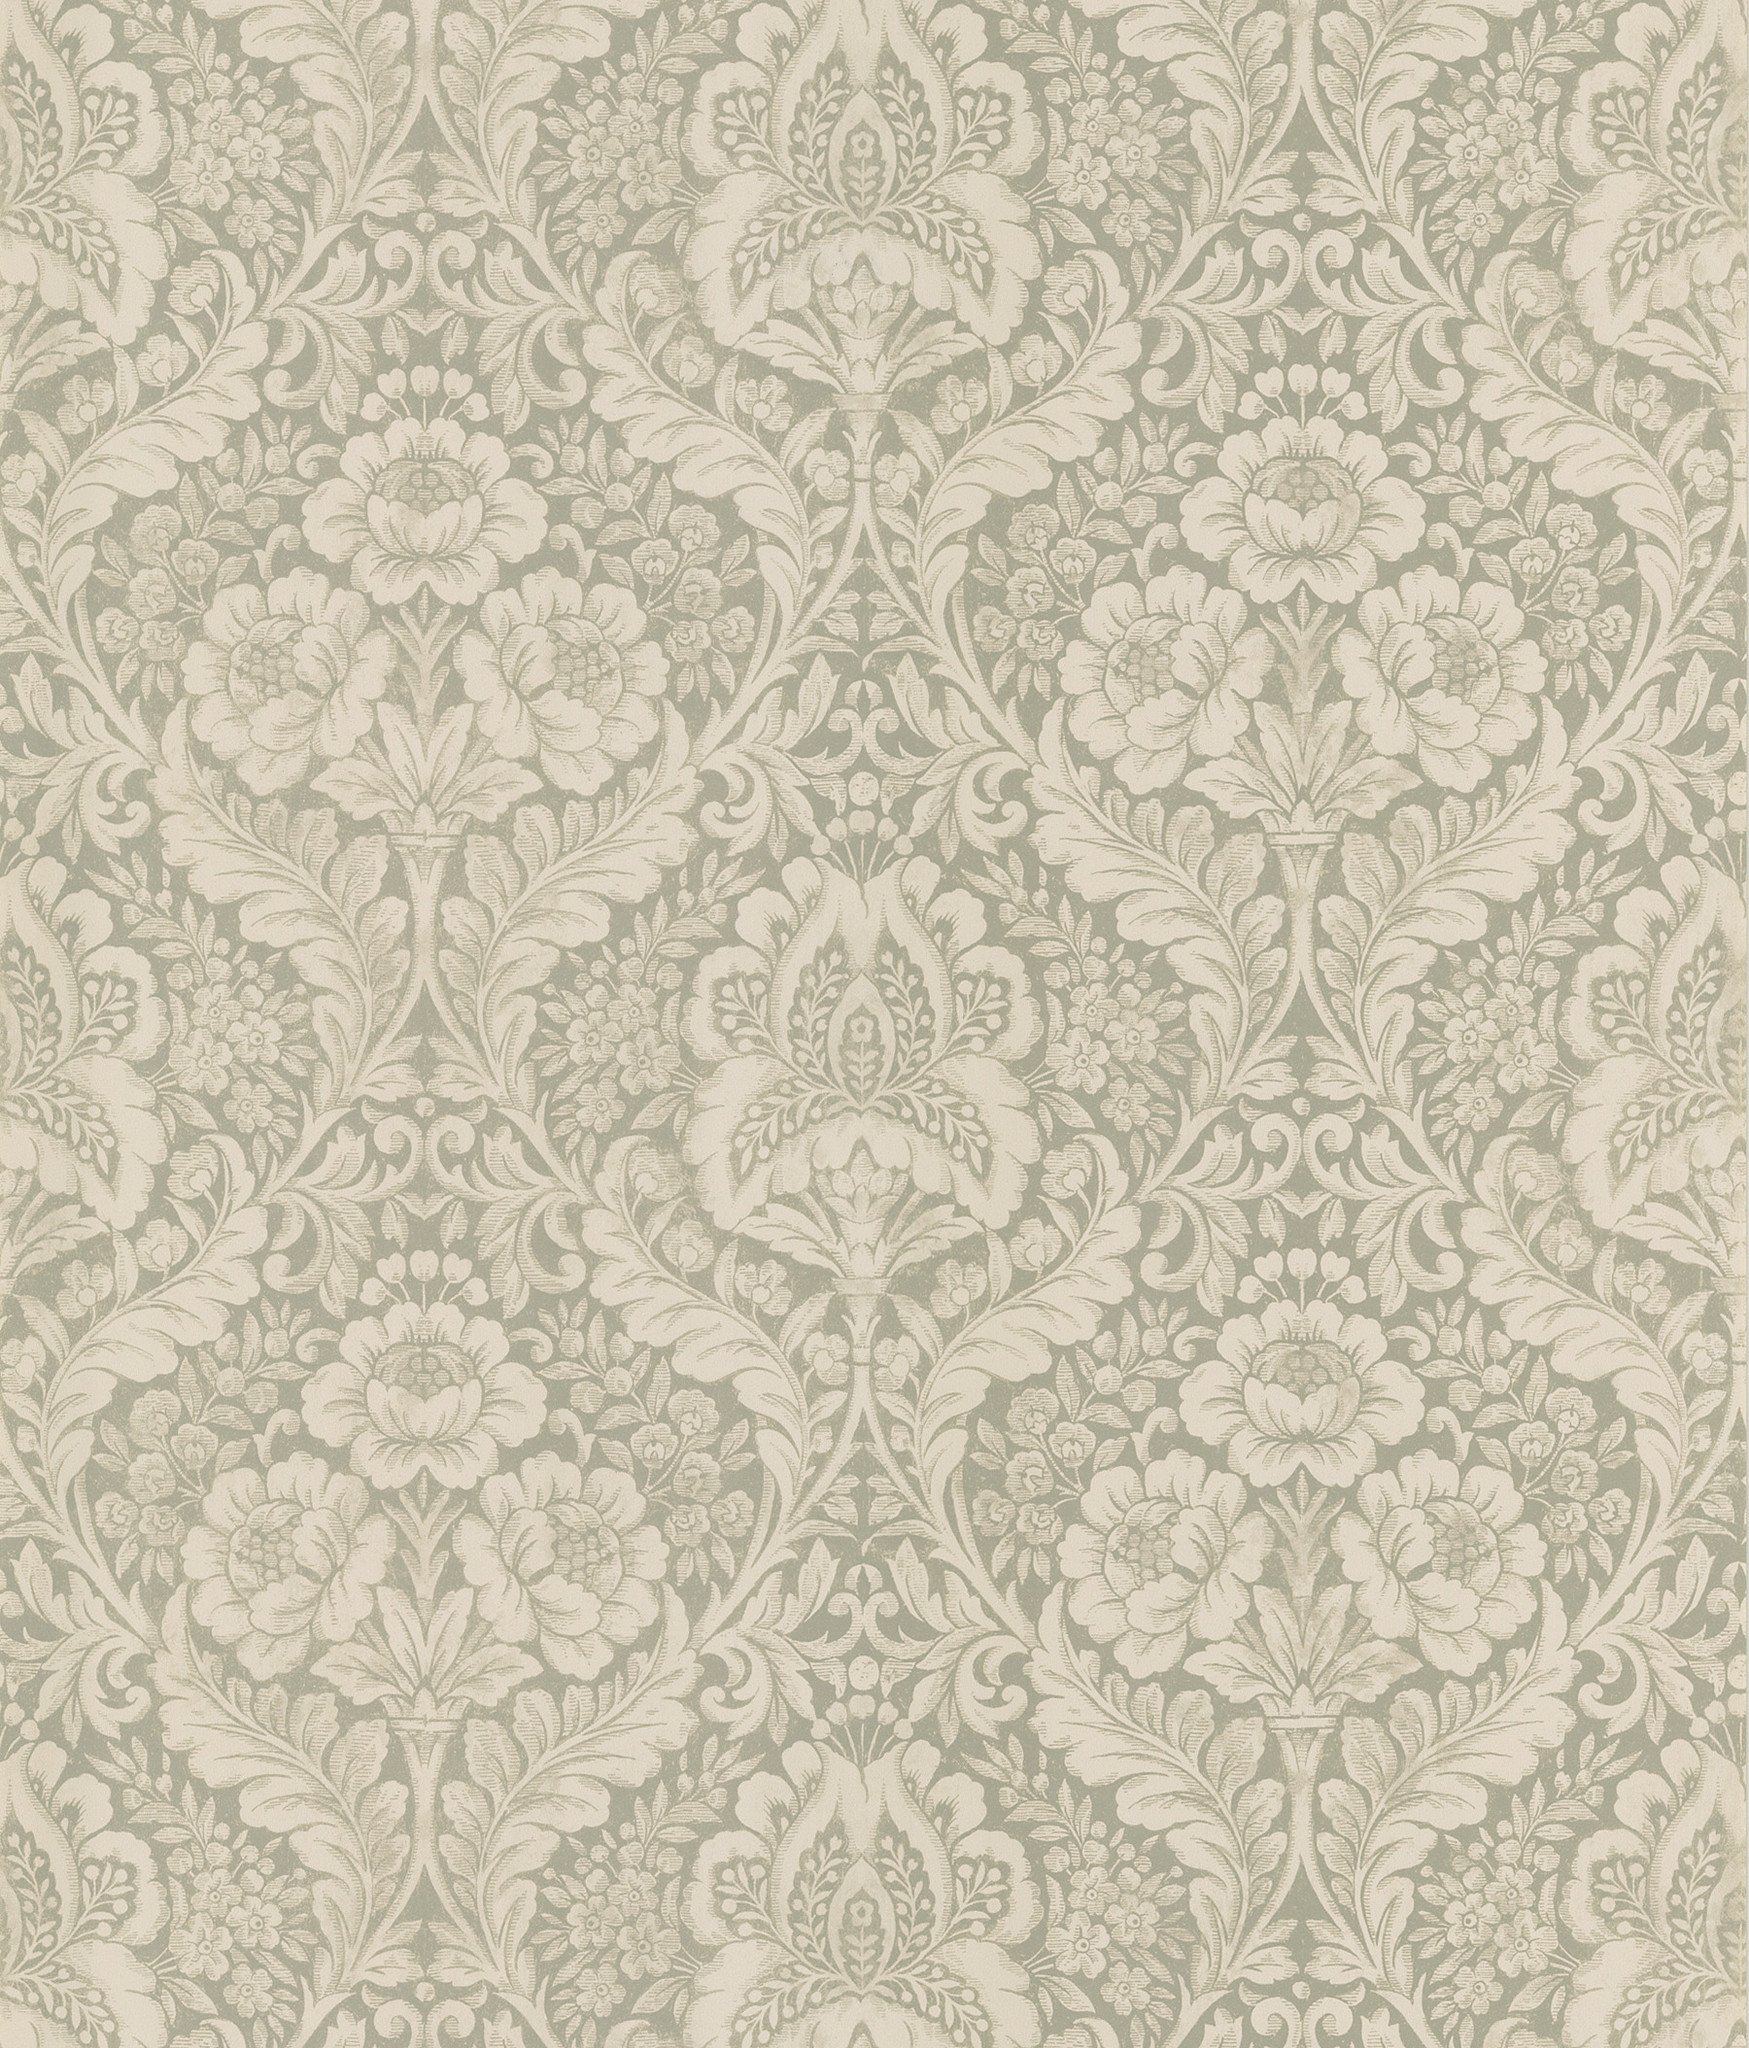 Medici Damask Wallpaper in Beige by Brewster Home Fashions BURKE 1749x2048